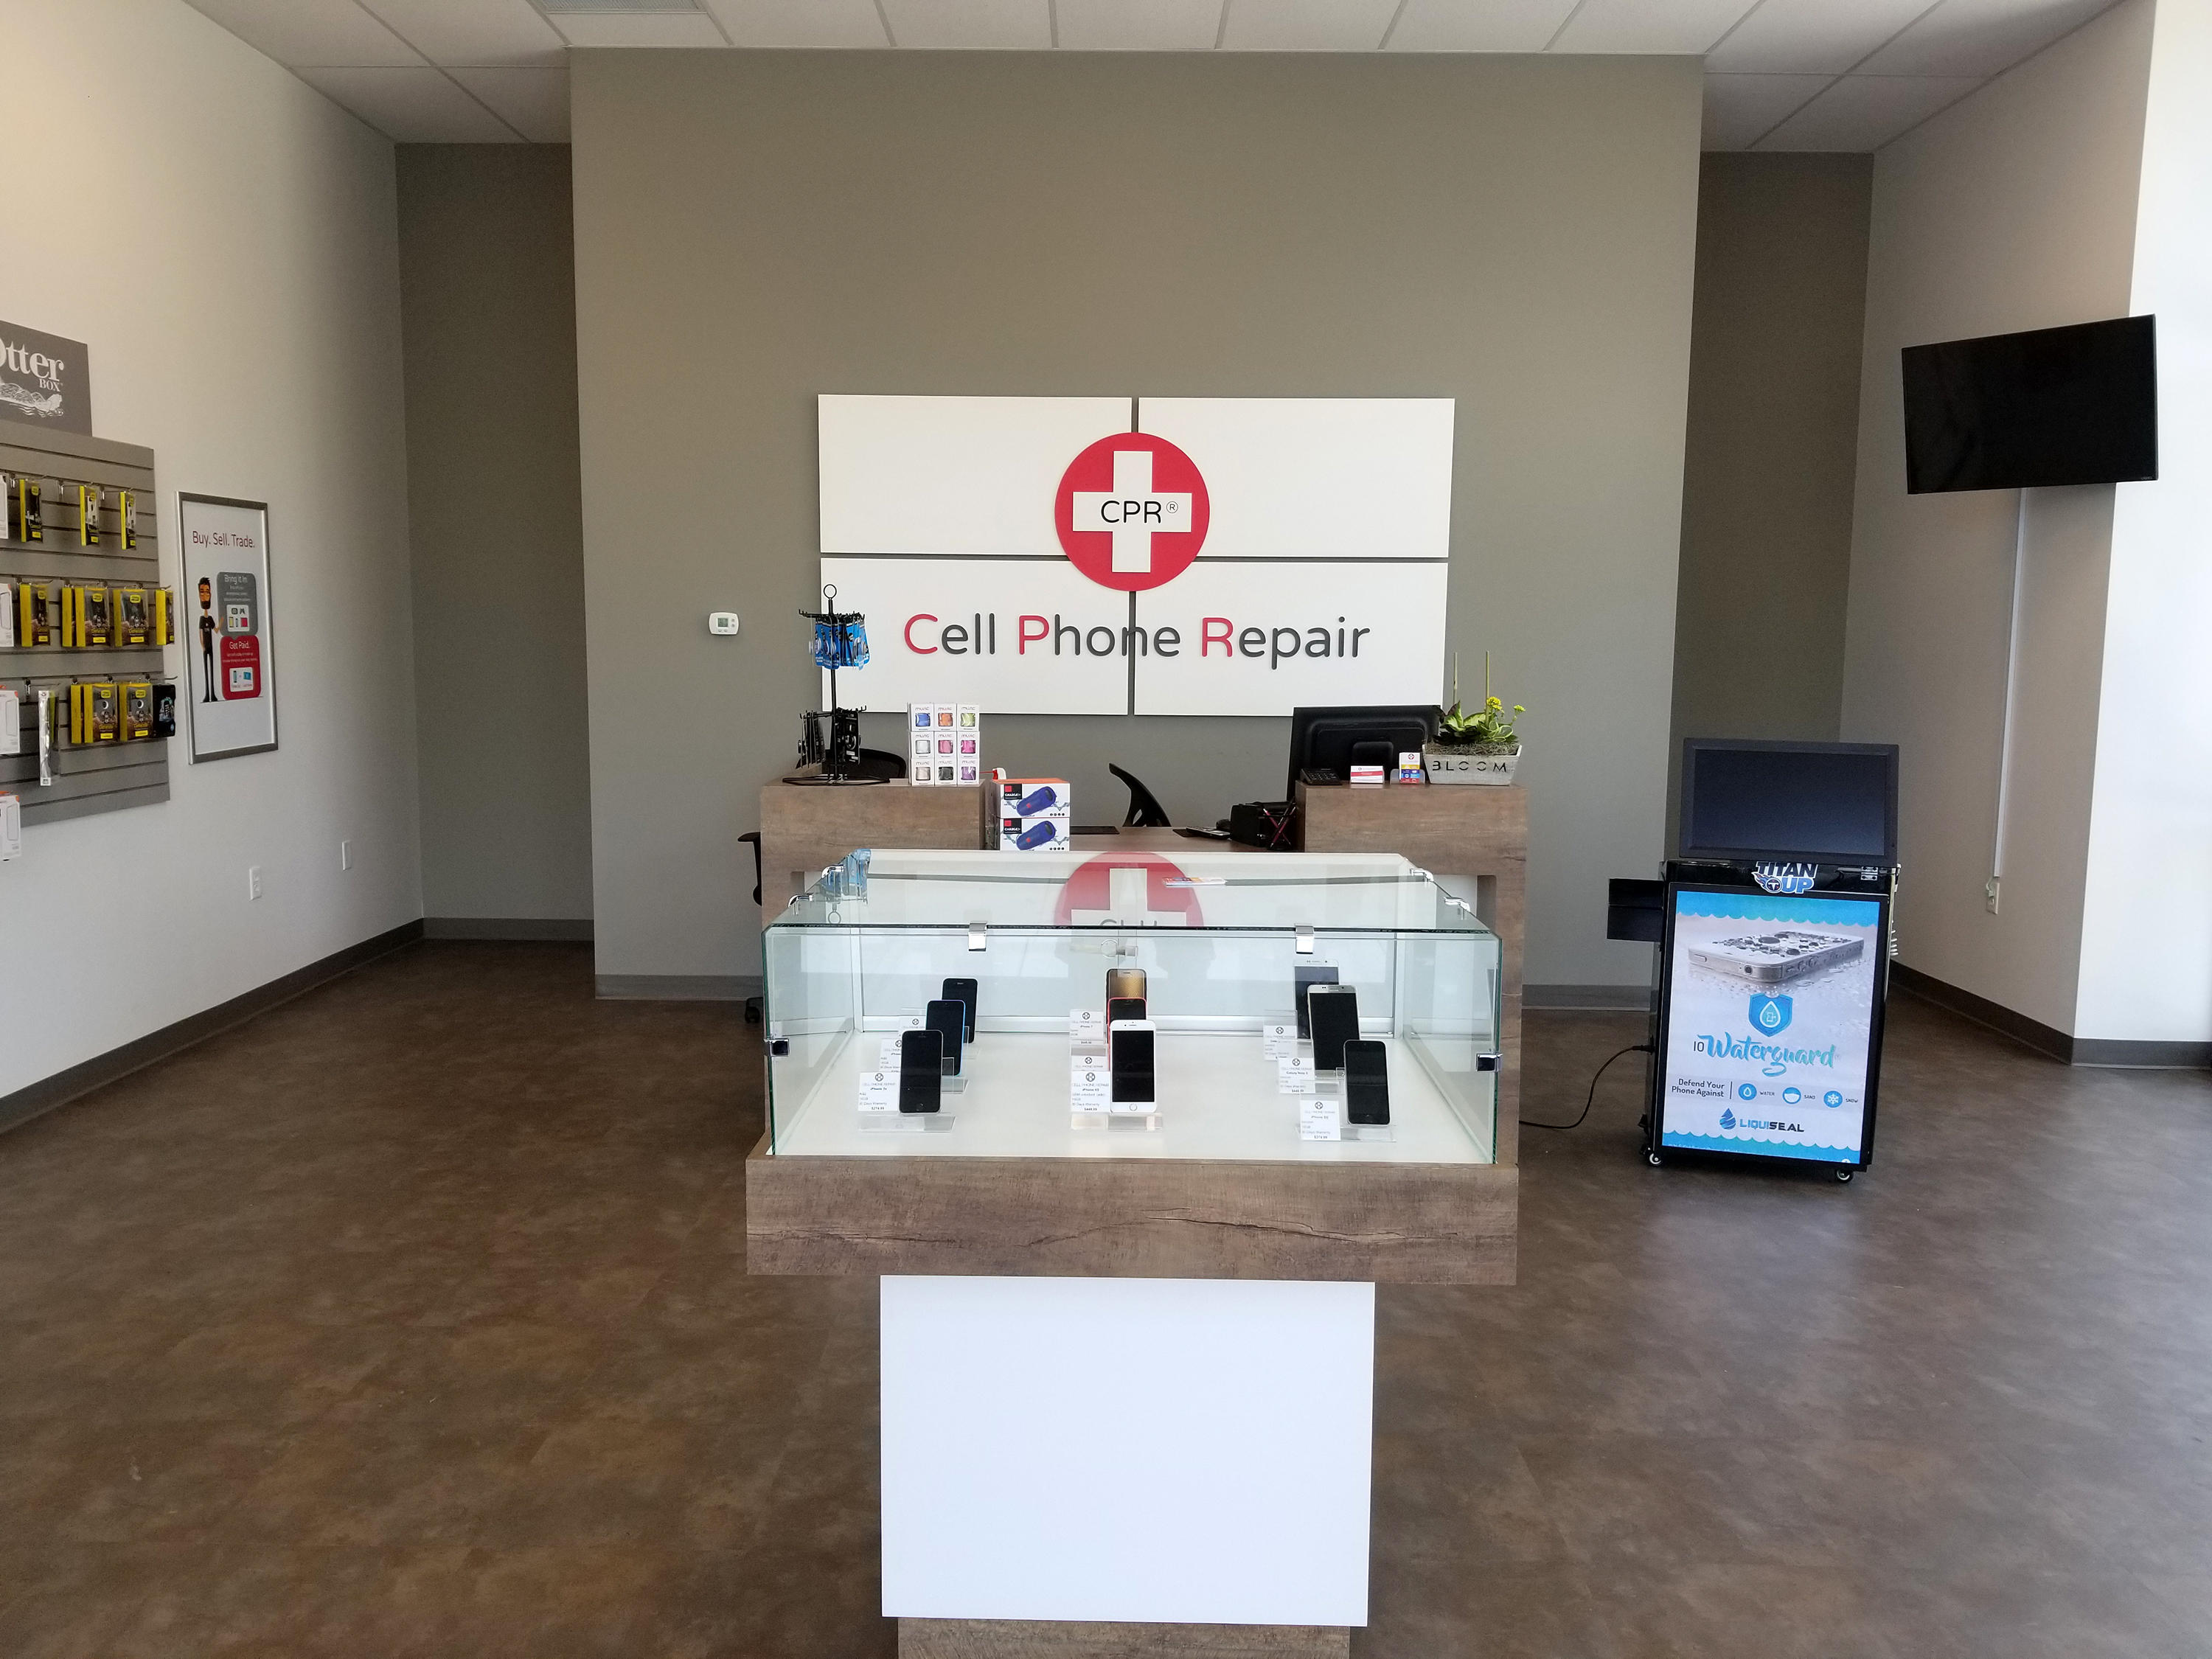 CPR Cell Phone Repair Nashville West image 1